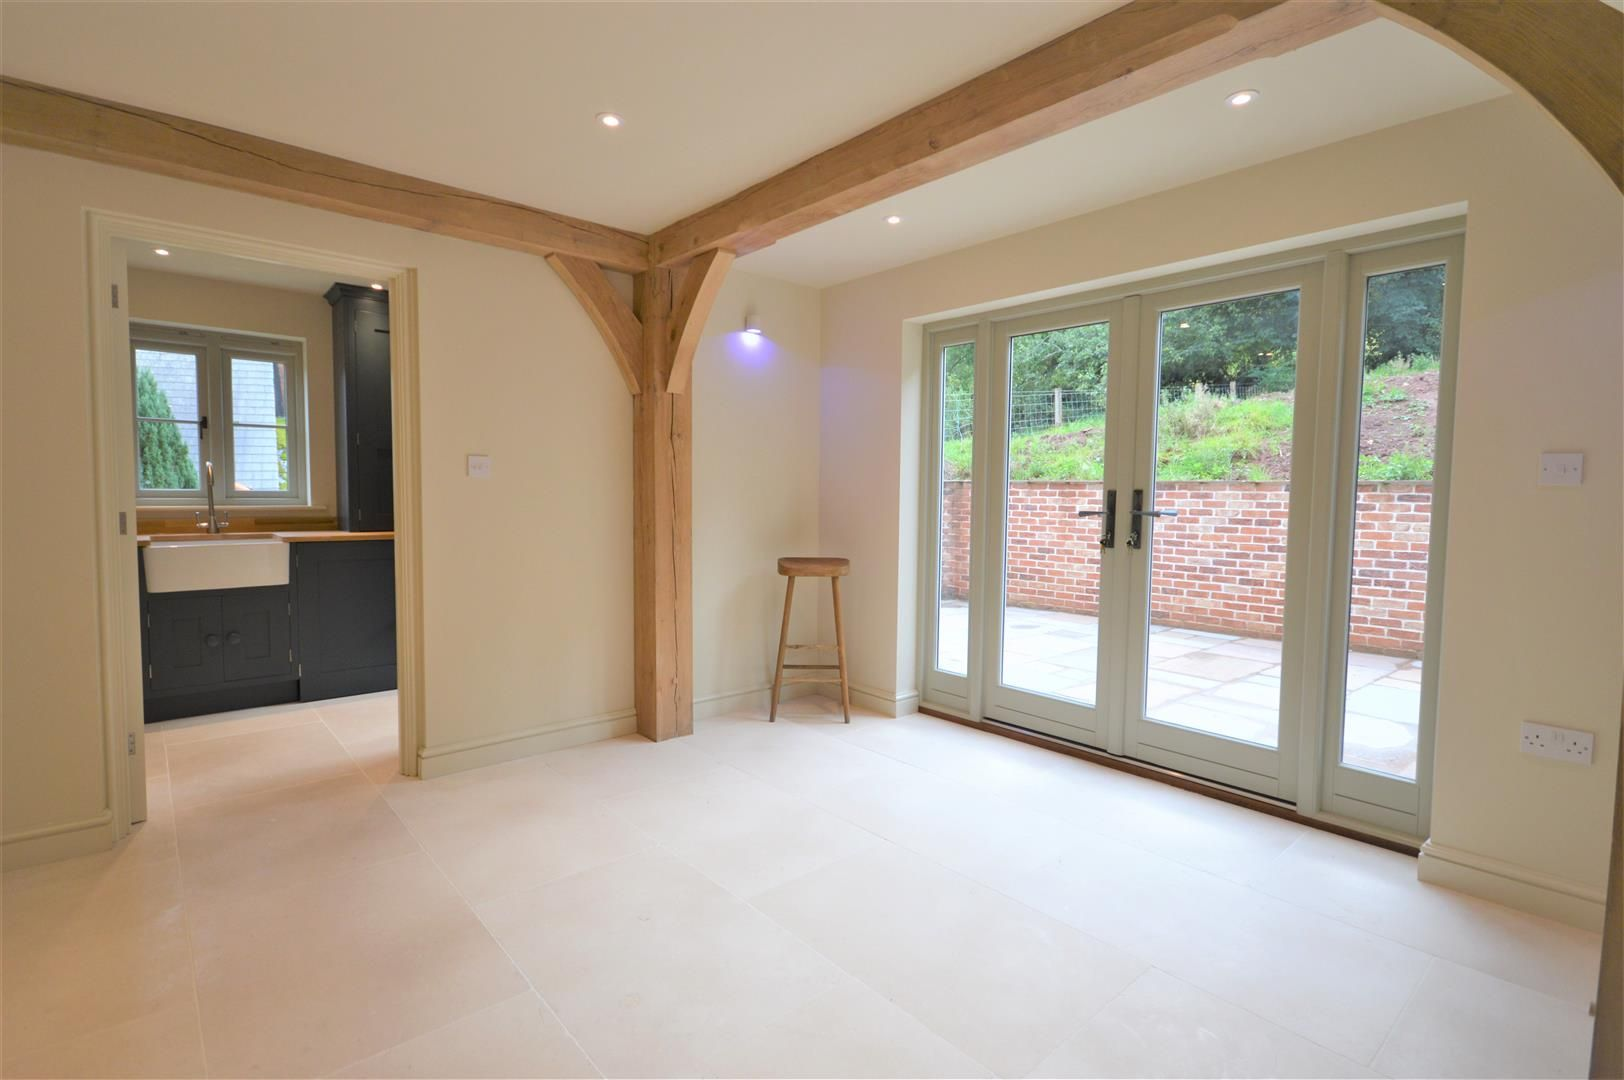 3 bed detached for sale in Dilwyn  - Property Image 5